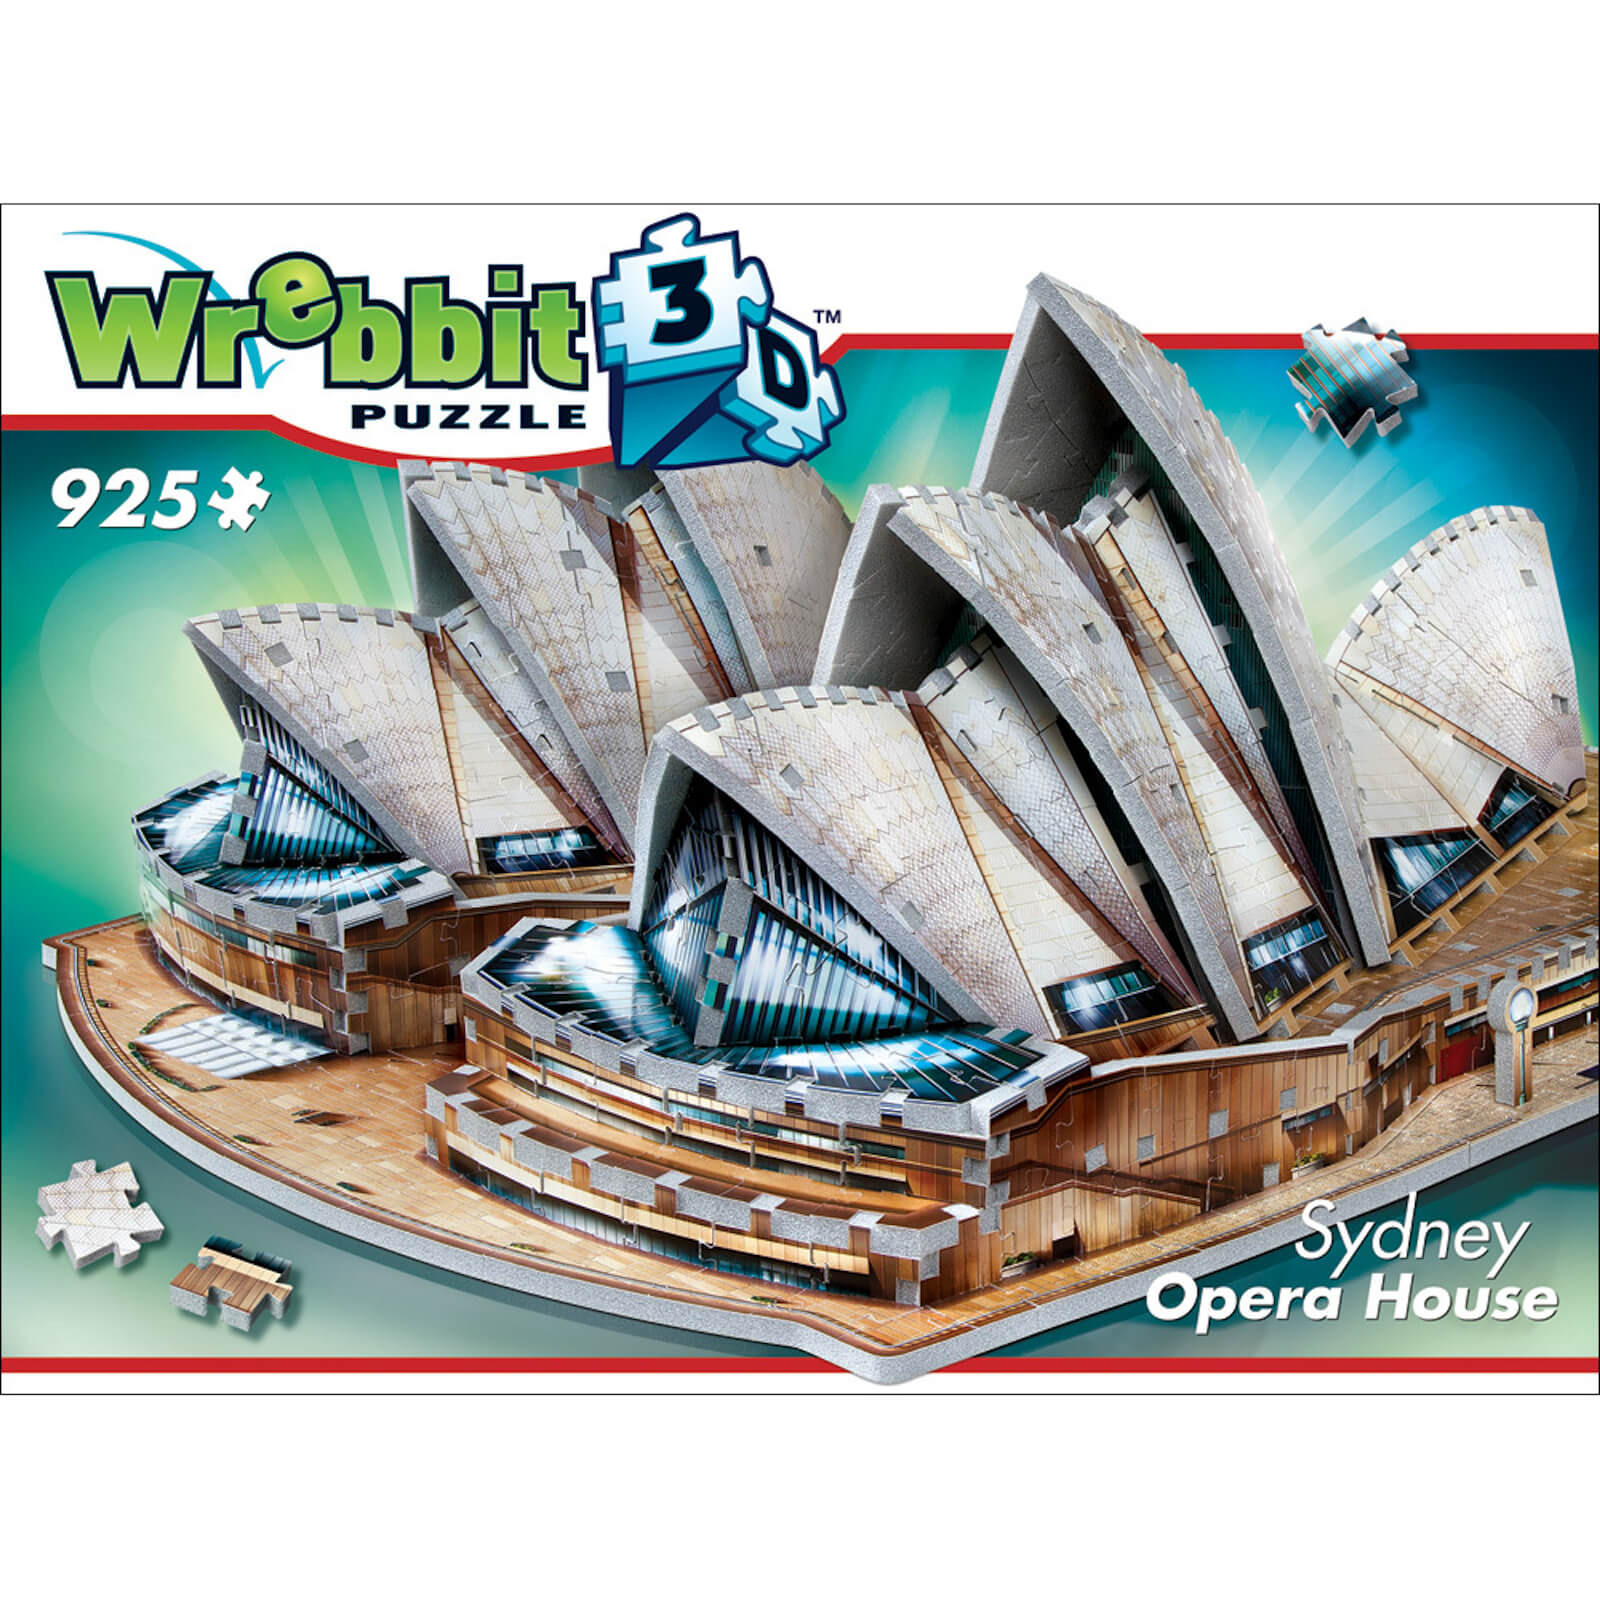 Image of Wrebbit 3D Sydney Opera House Jigsaw Puzzle - 925 Pieces